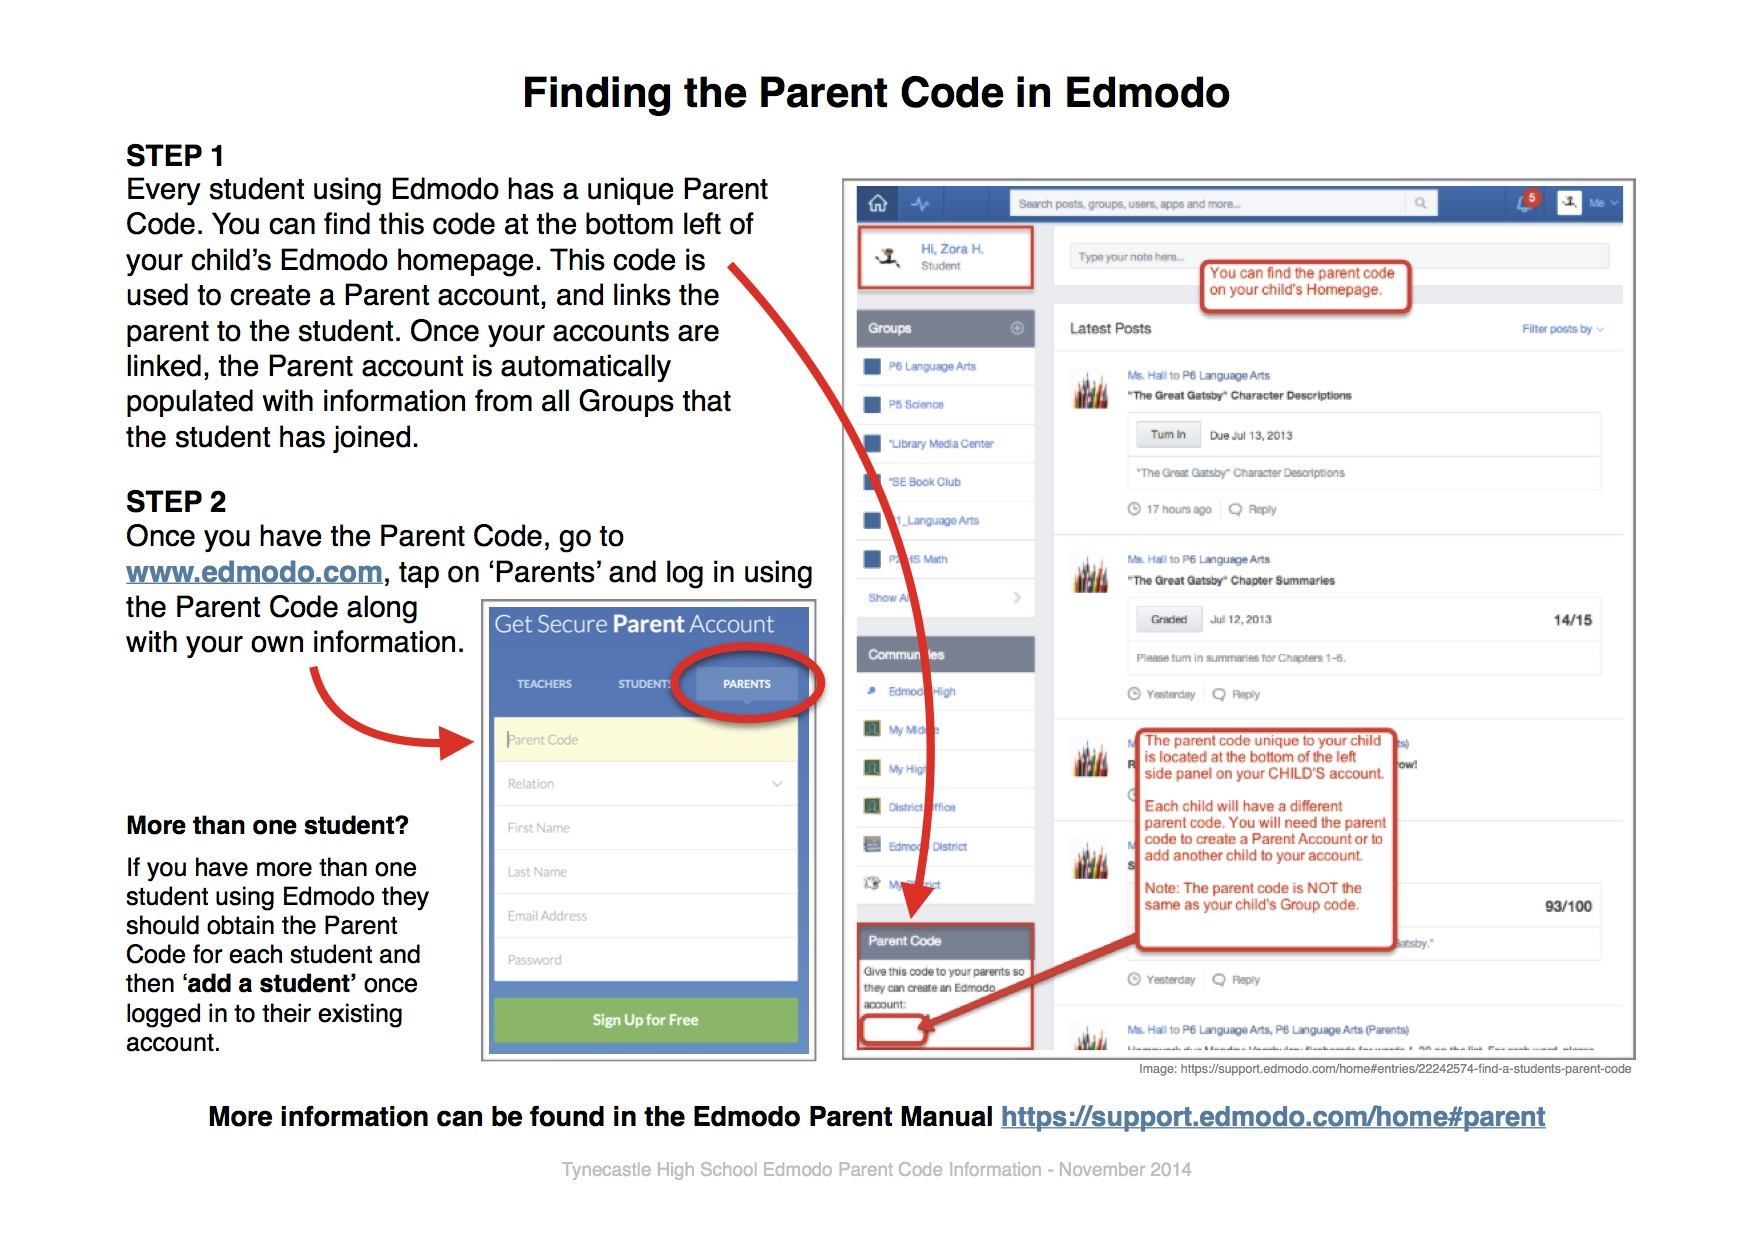 How to find the Parent Code in Edmodo